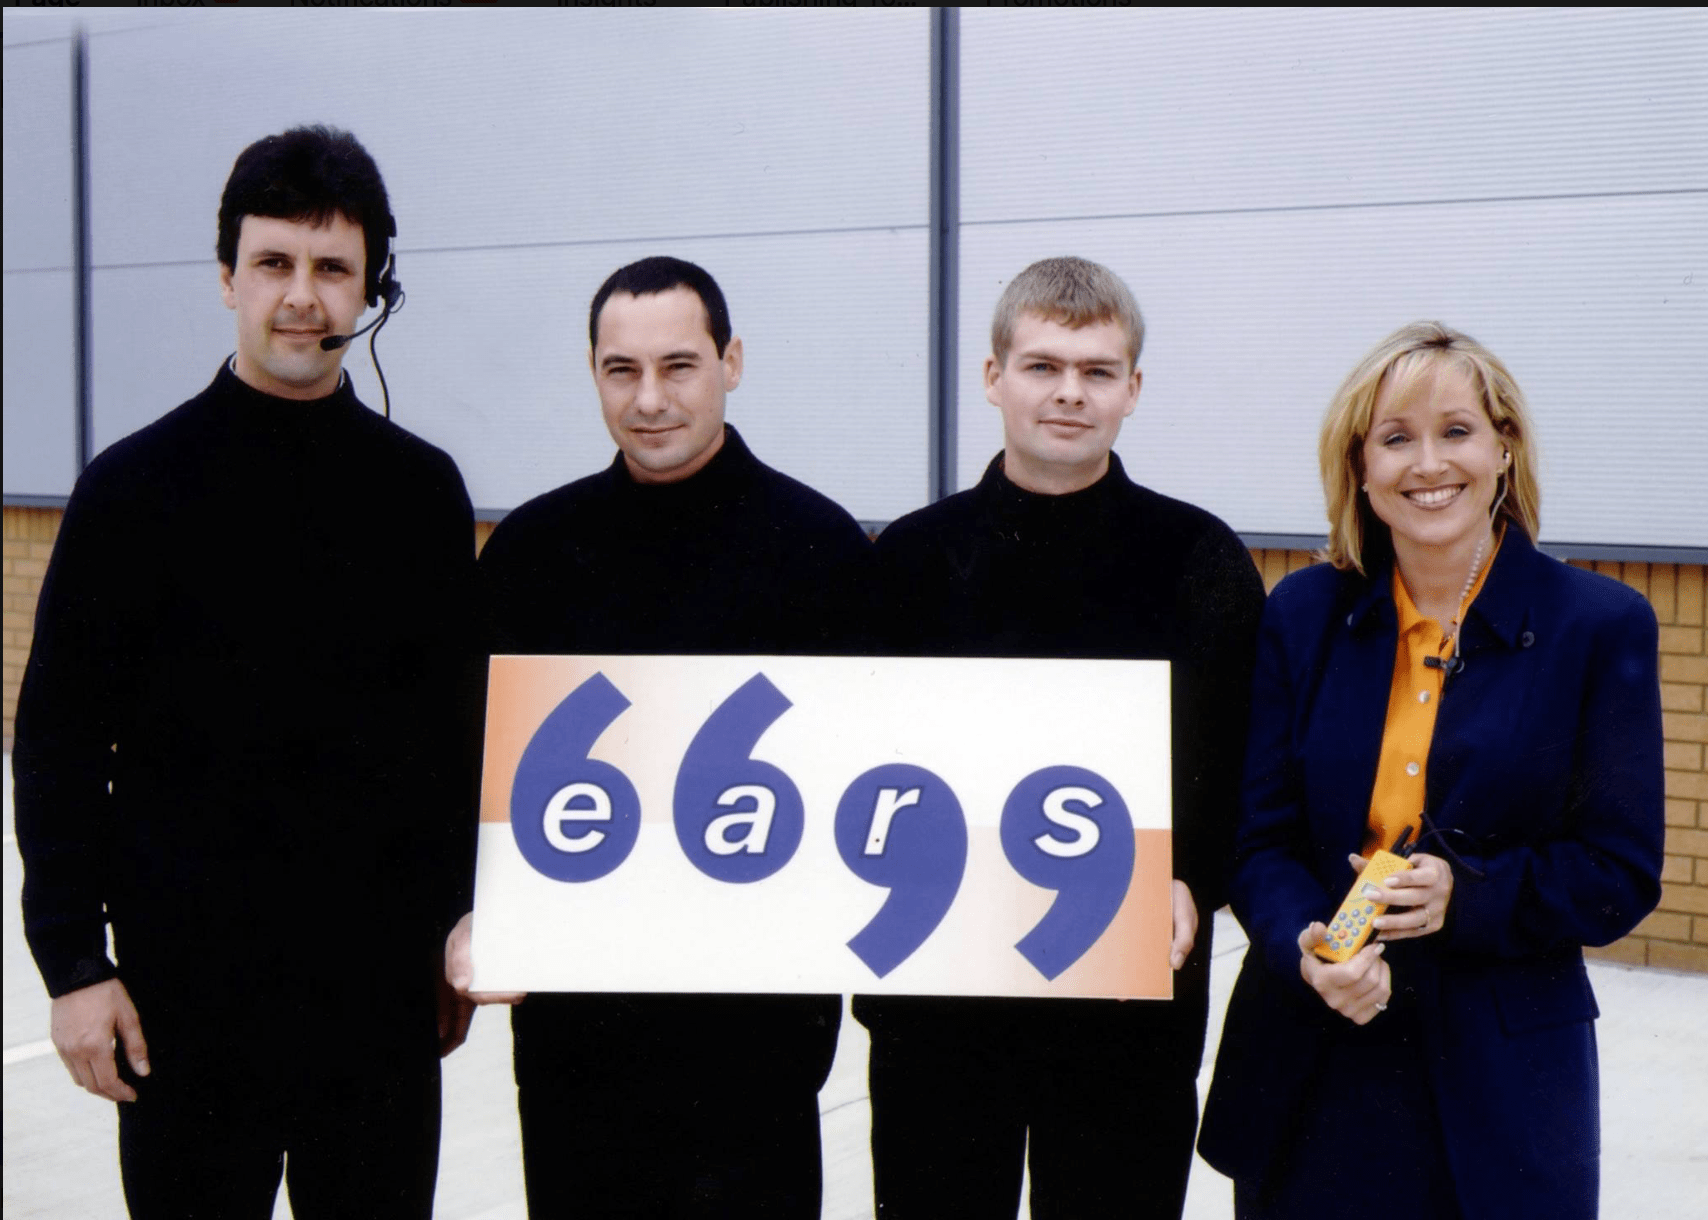 EARS team - Get in touch